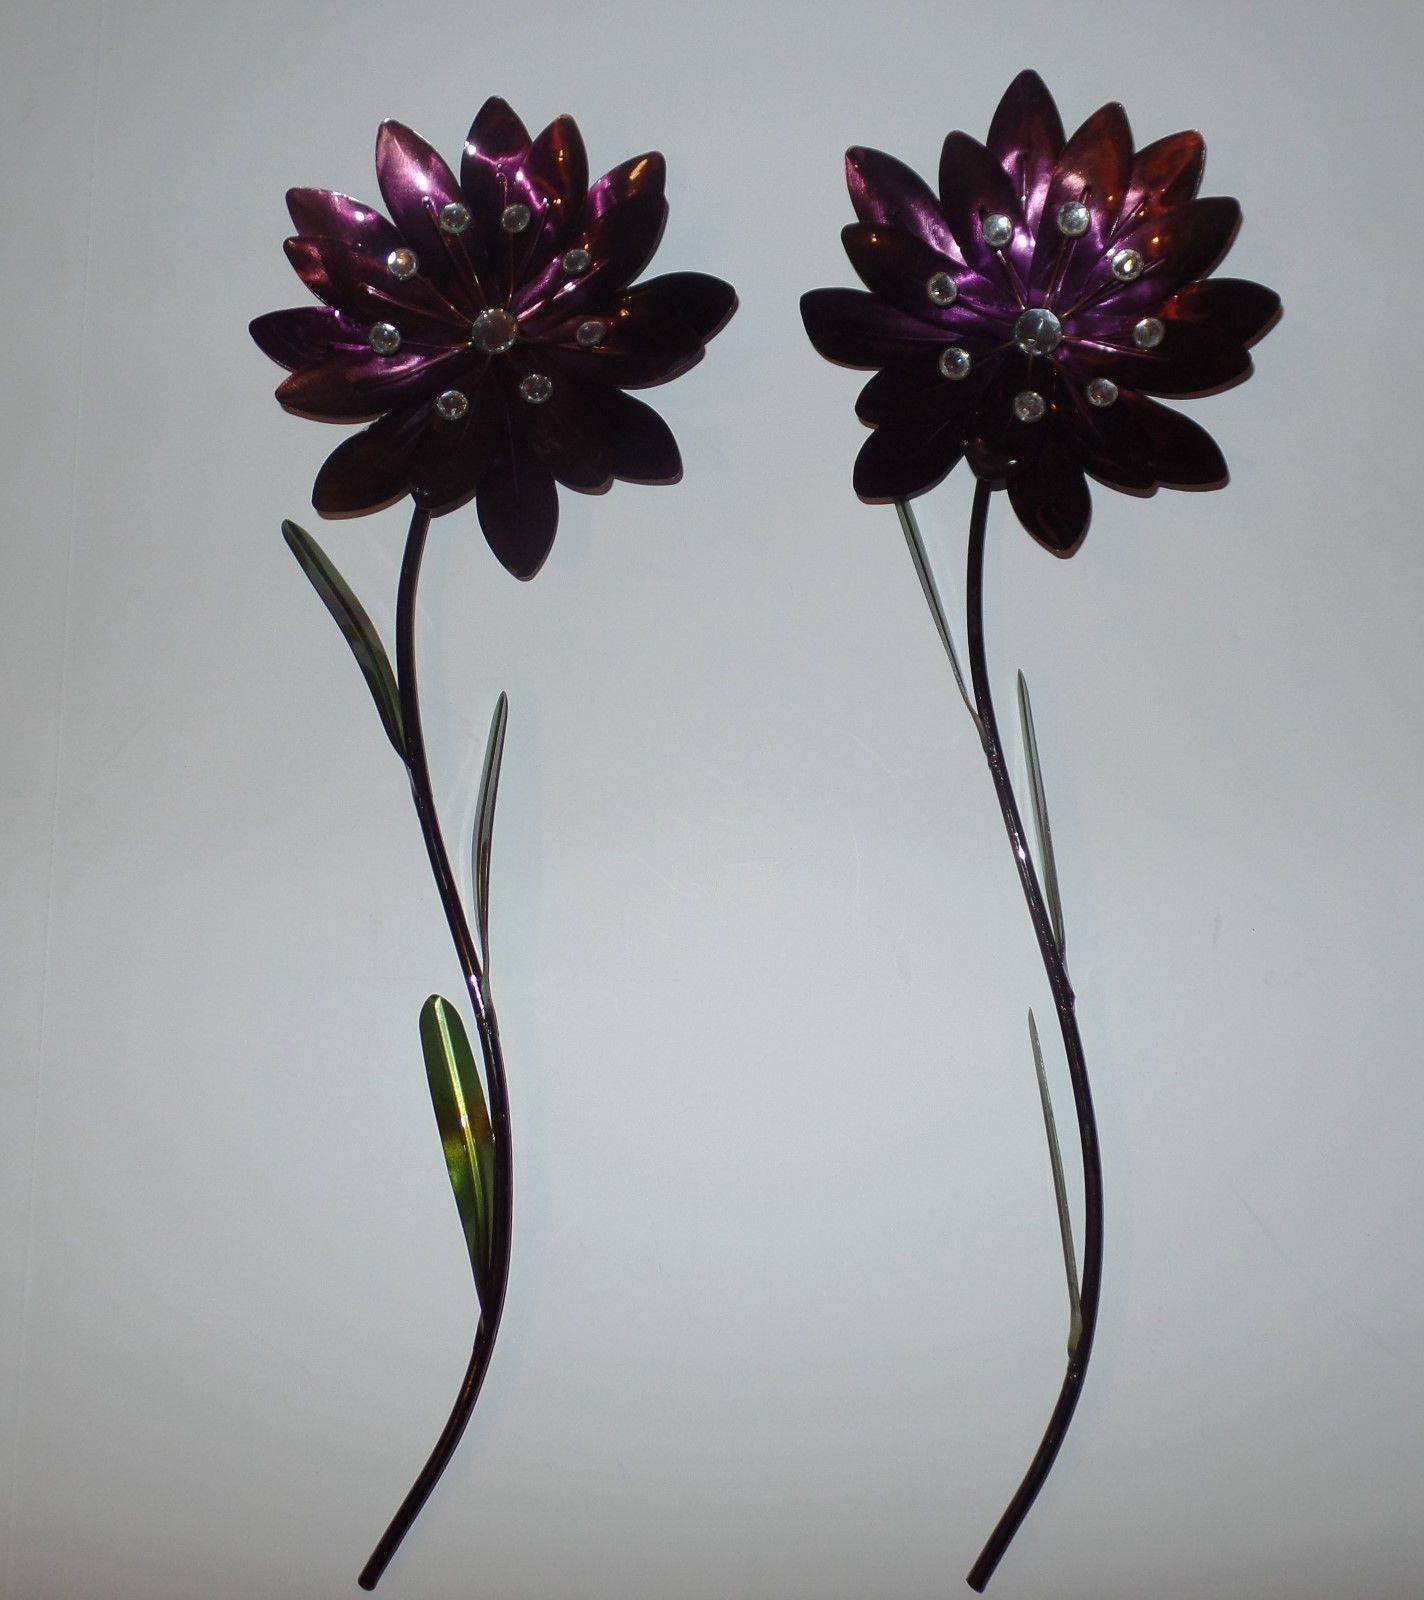 Decorative Metal Flowers Wall Sculpture Art Home Décor (set Of 2 Pertaining To Current Purple Flower Metal Wall Art (View 18 of 25)